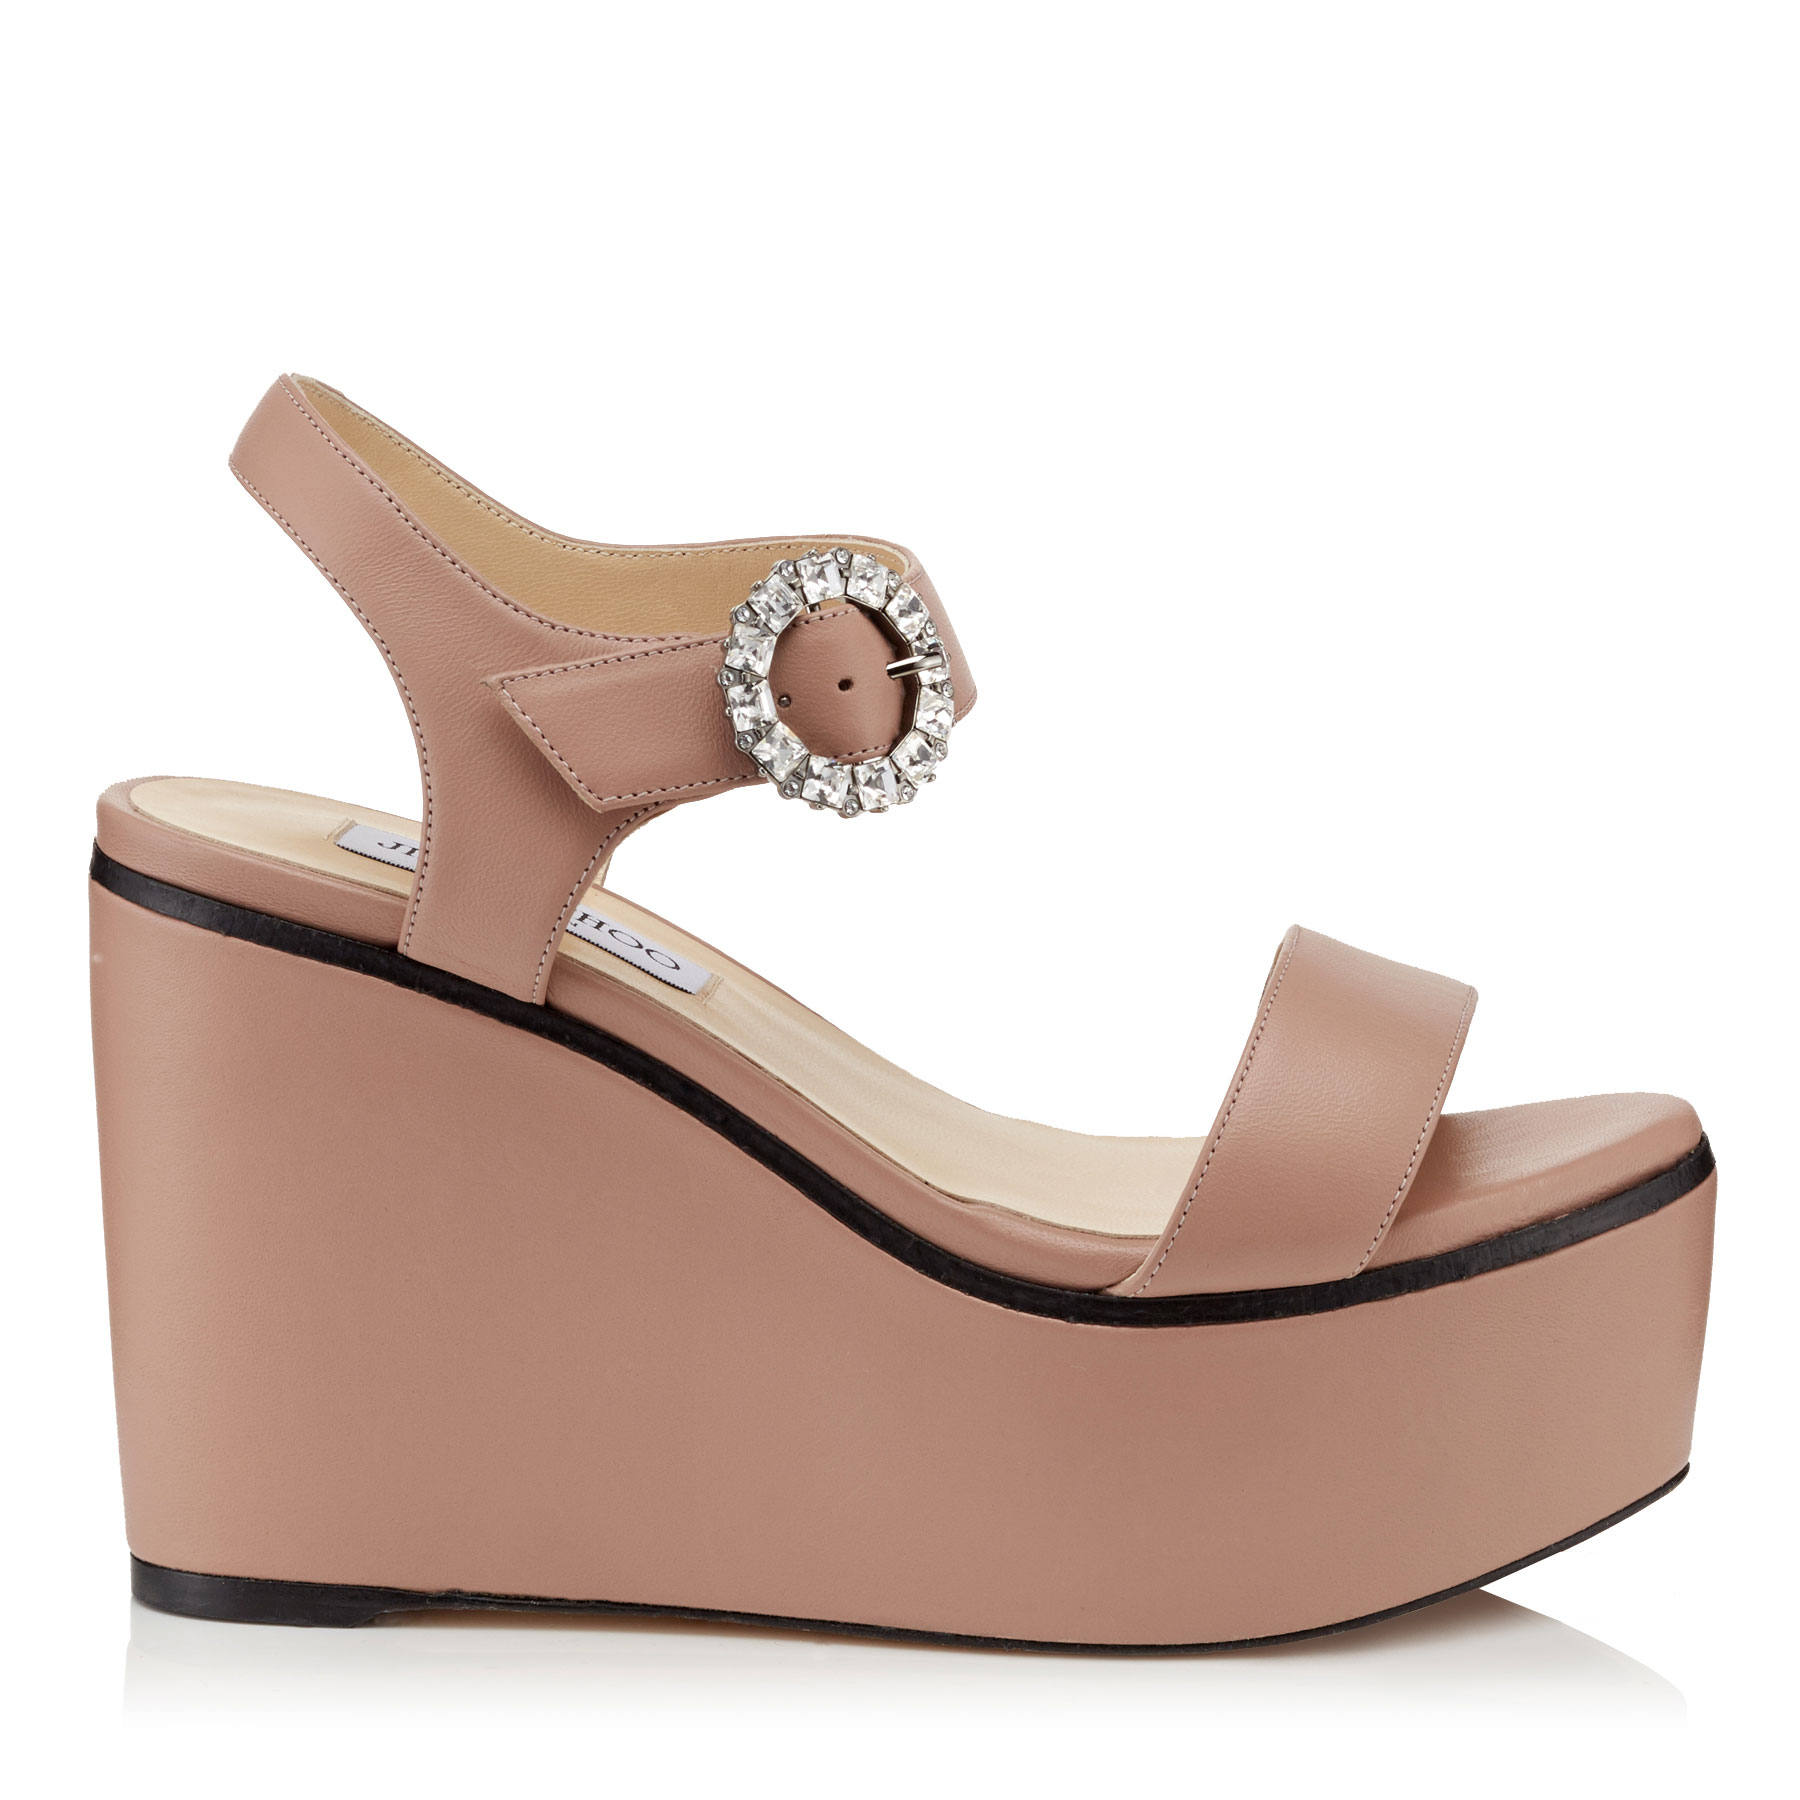 NYLAH 100 Ballet Pink Nappa Leather Wedge Sandals with Crystal Buckle by Jimmy Choo